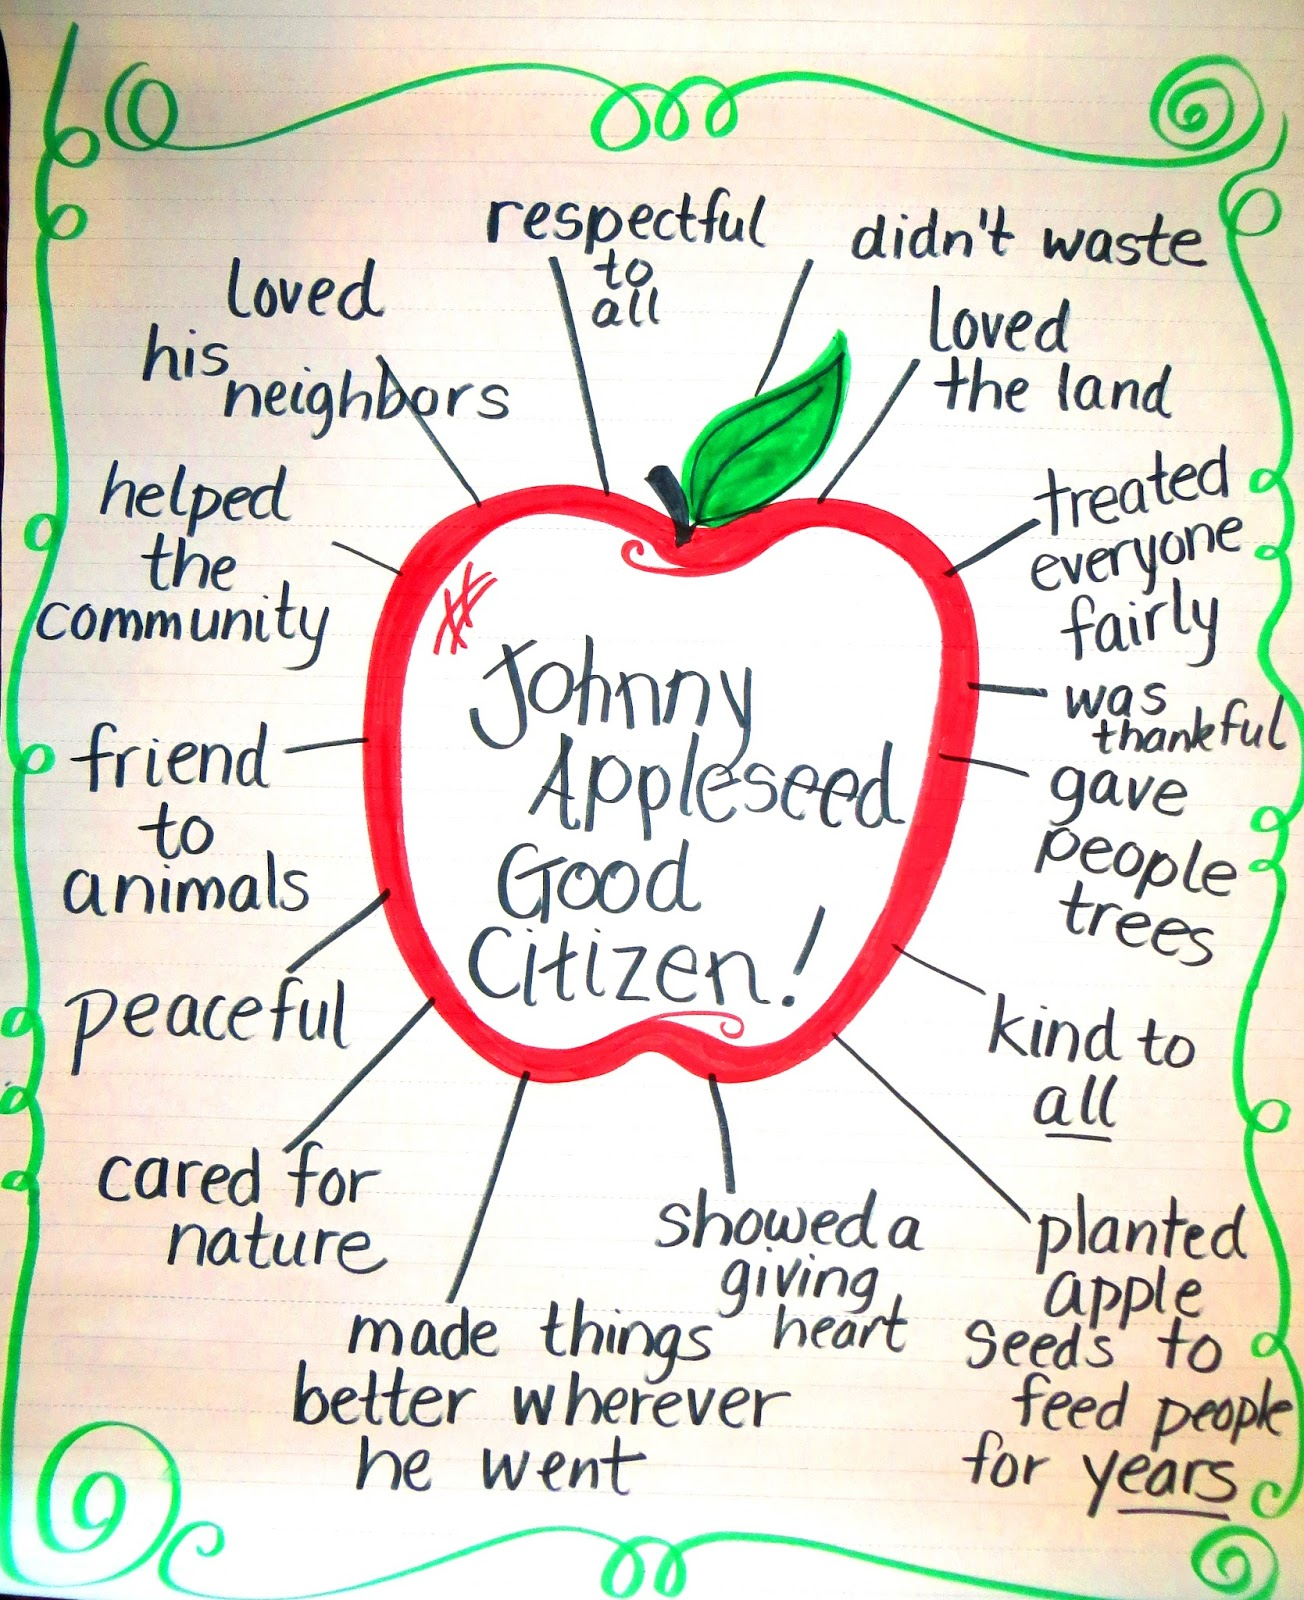 Good Citizenship Essay: How To Be A Good Citizen